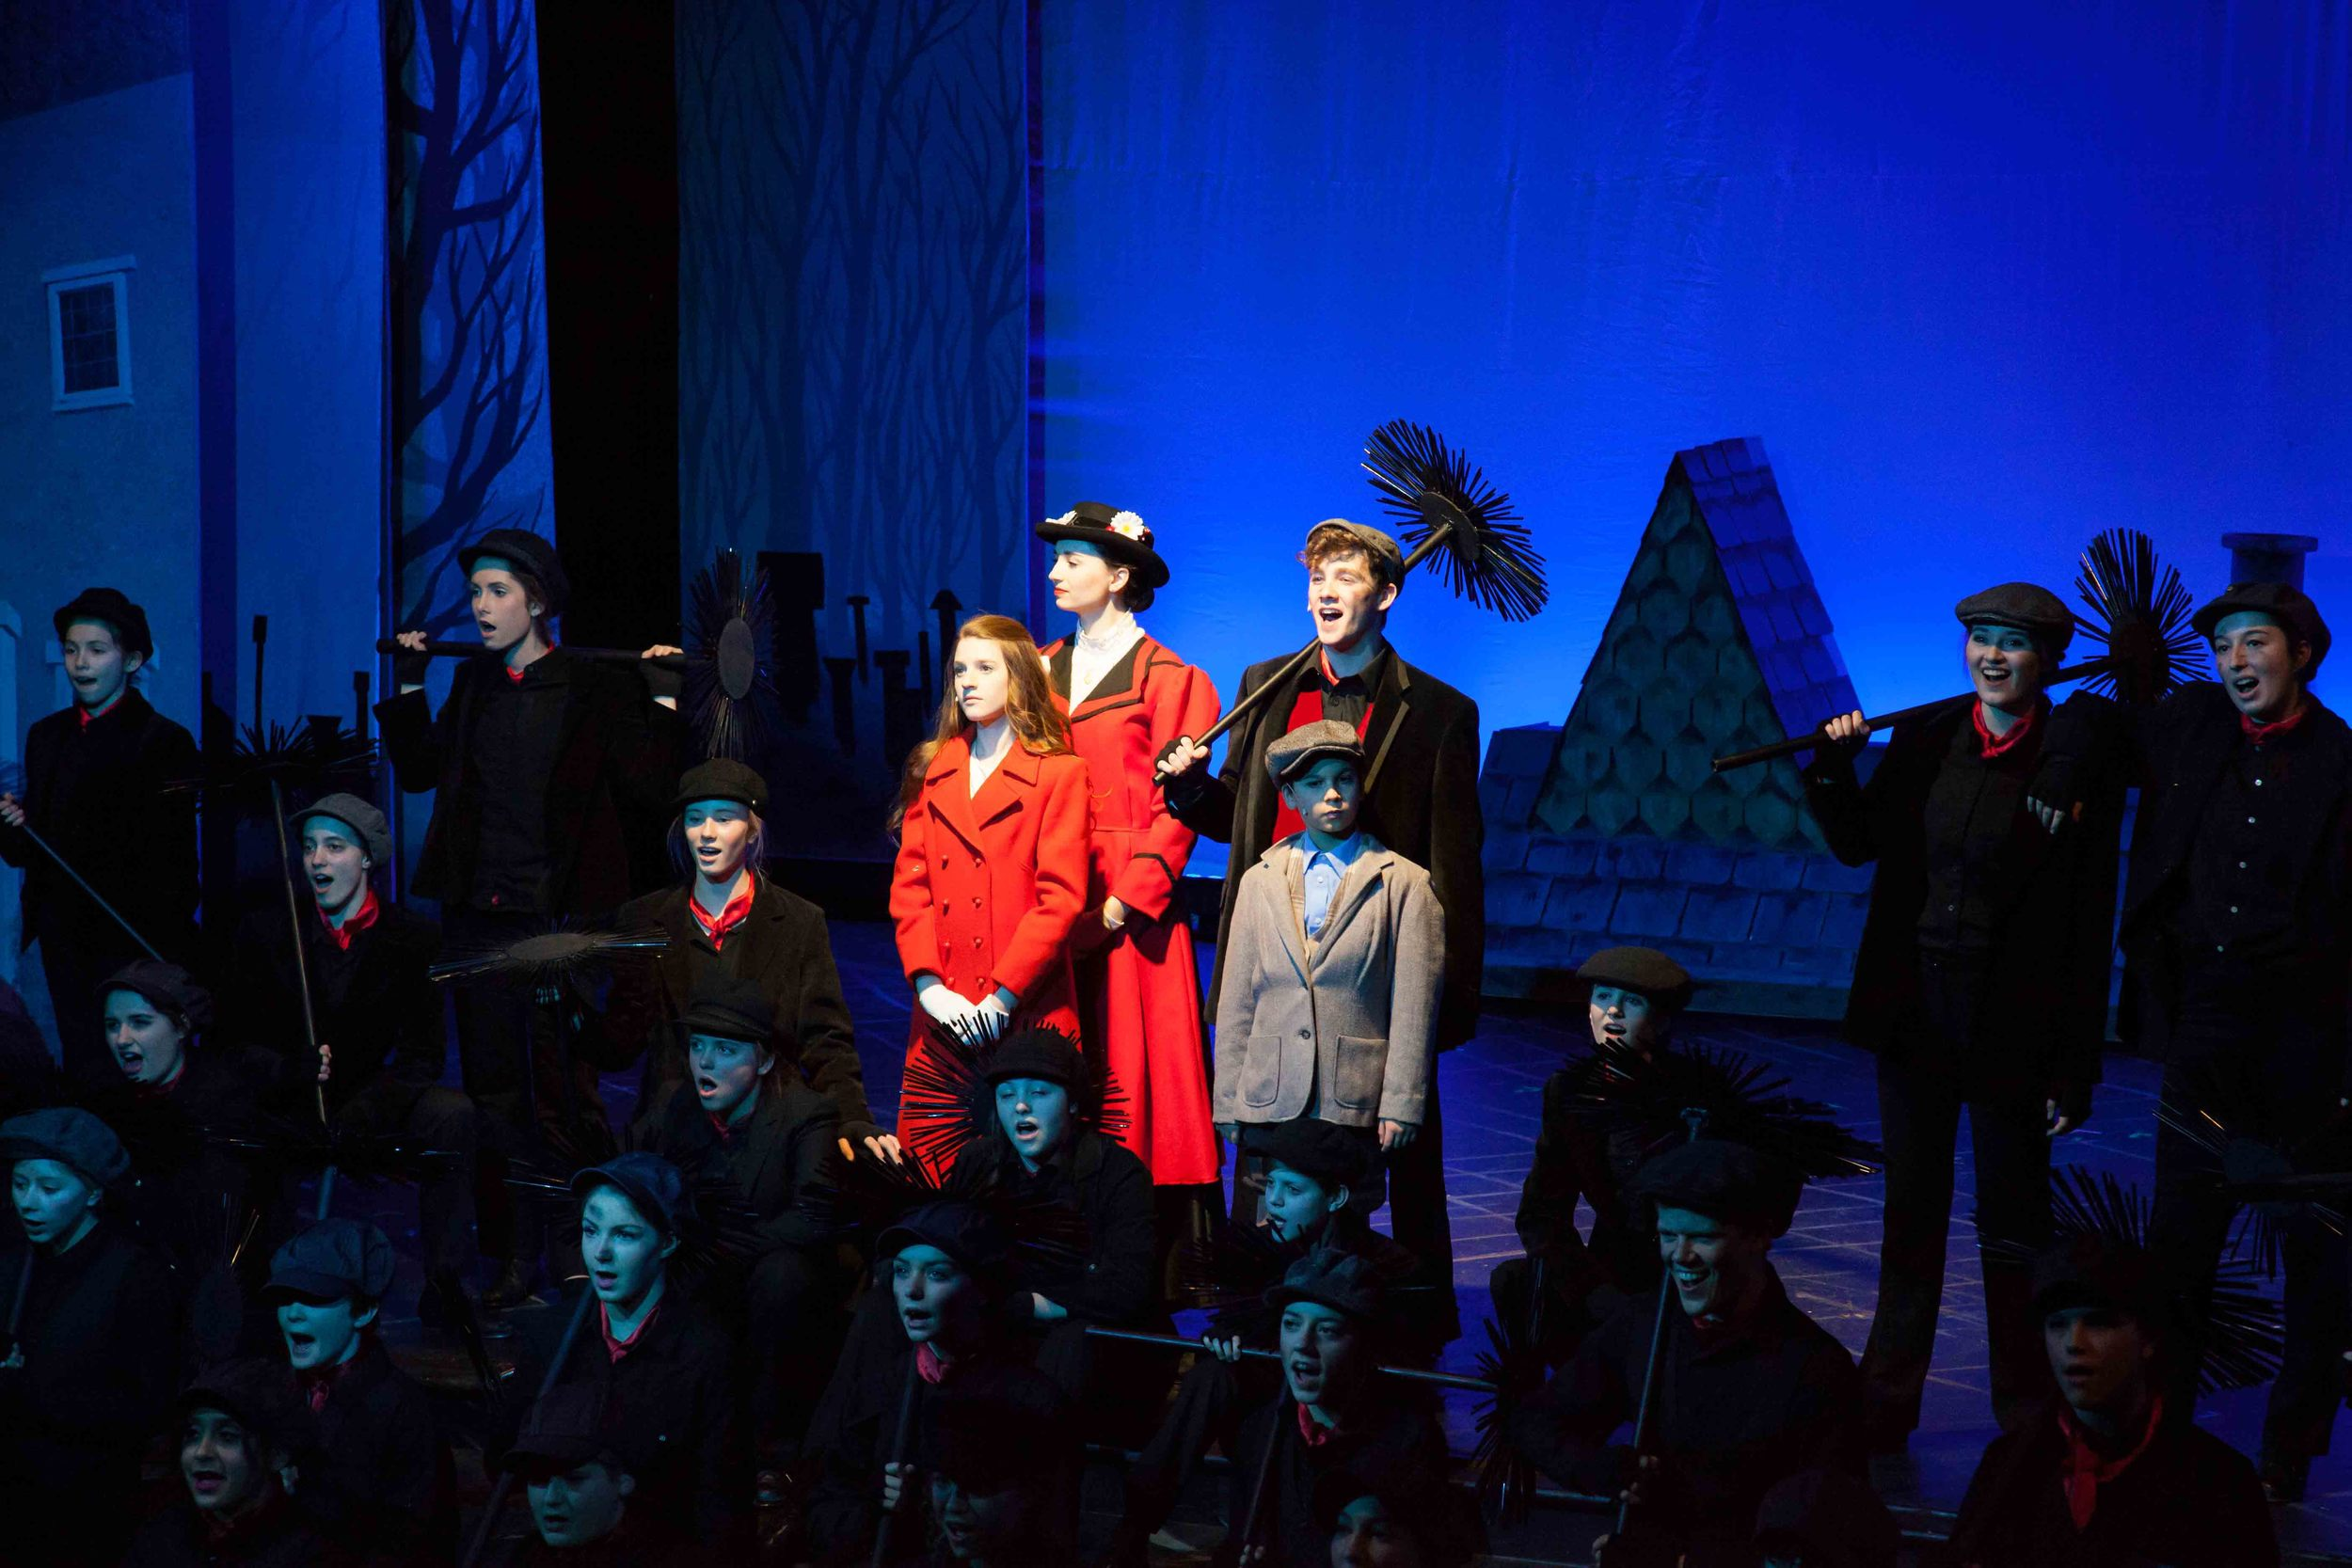 2-7-16 Mary Poppins Prim Cast 0374.jpg